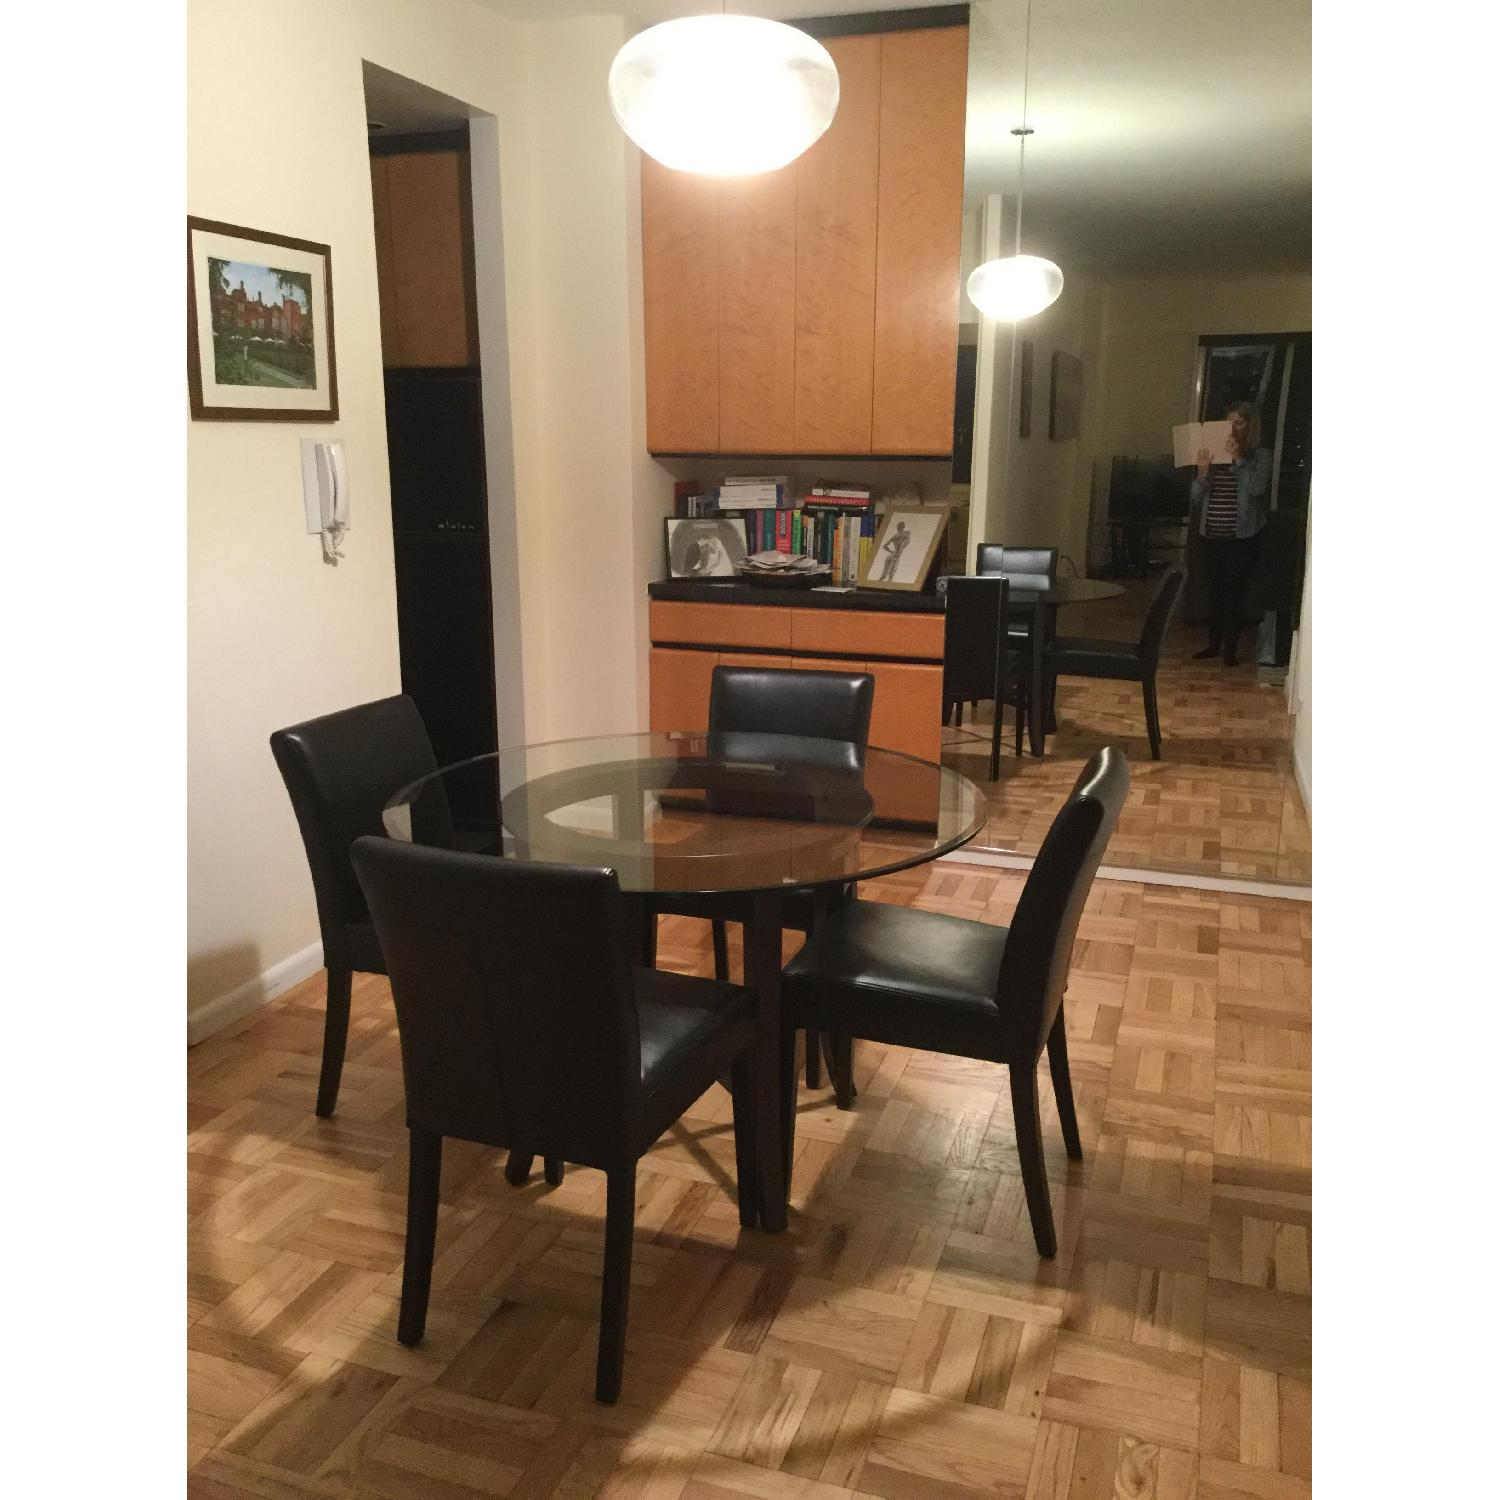 Crate & Barrel Glass Dining Table w/ 4 Black Leather Chairs - image-1